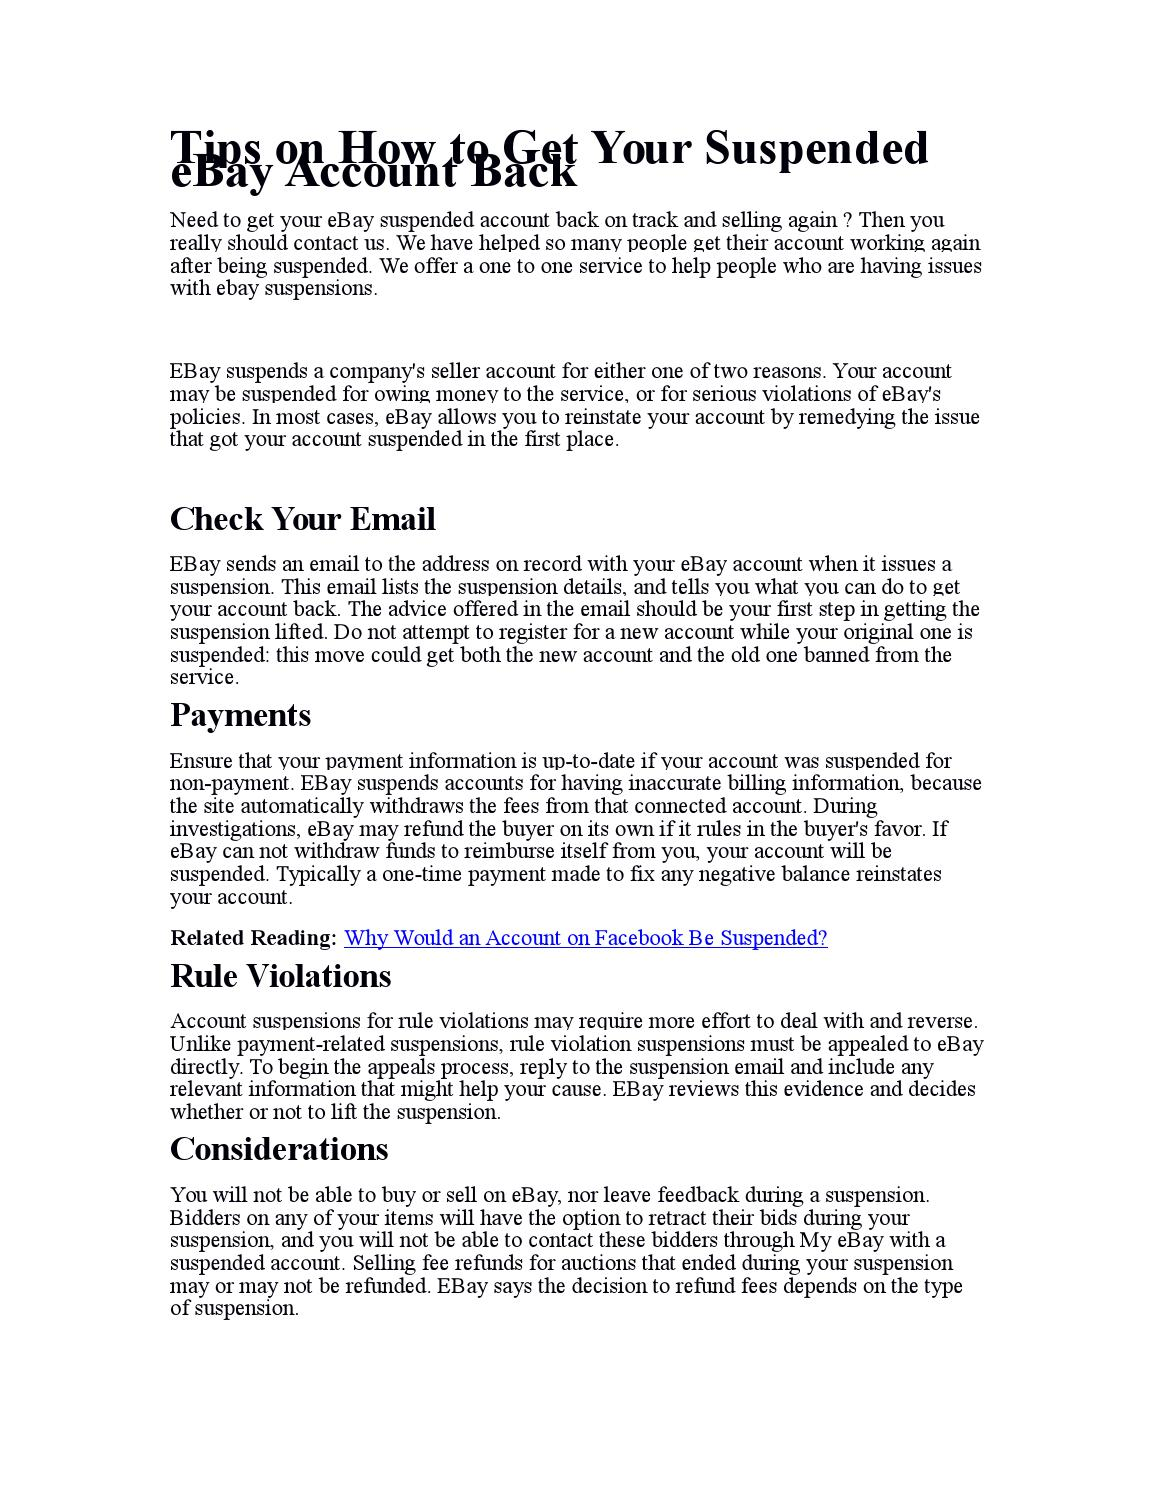 Tips On How To Get Your Suspended Ebay Account Back By Edwardshillrew Issuu